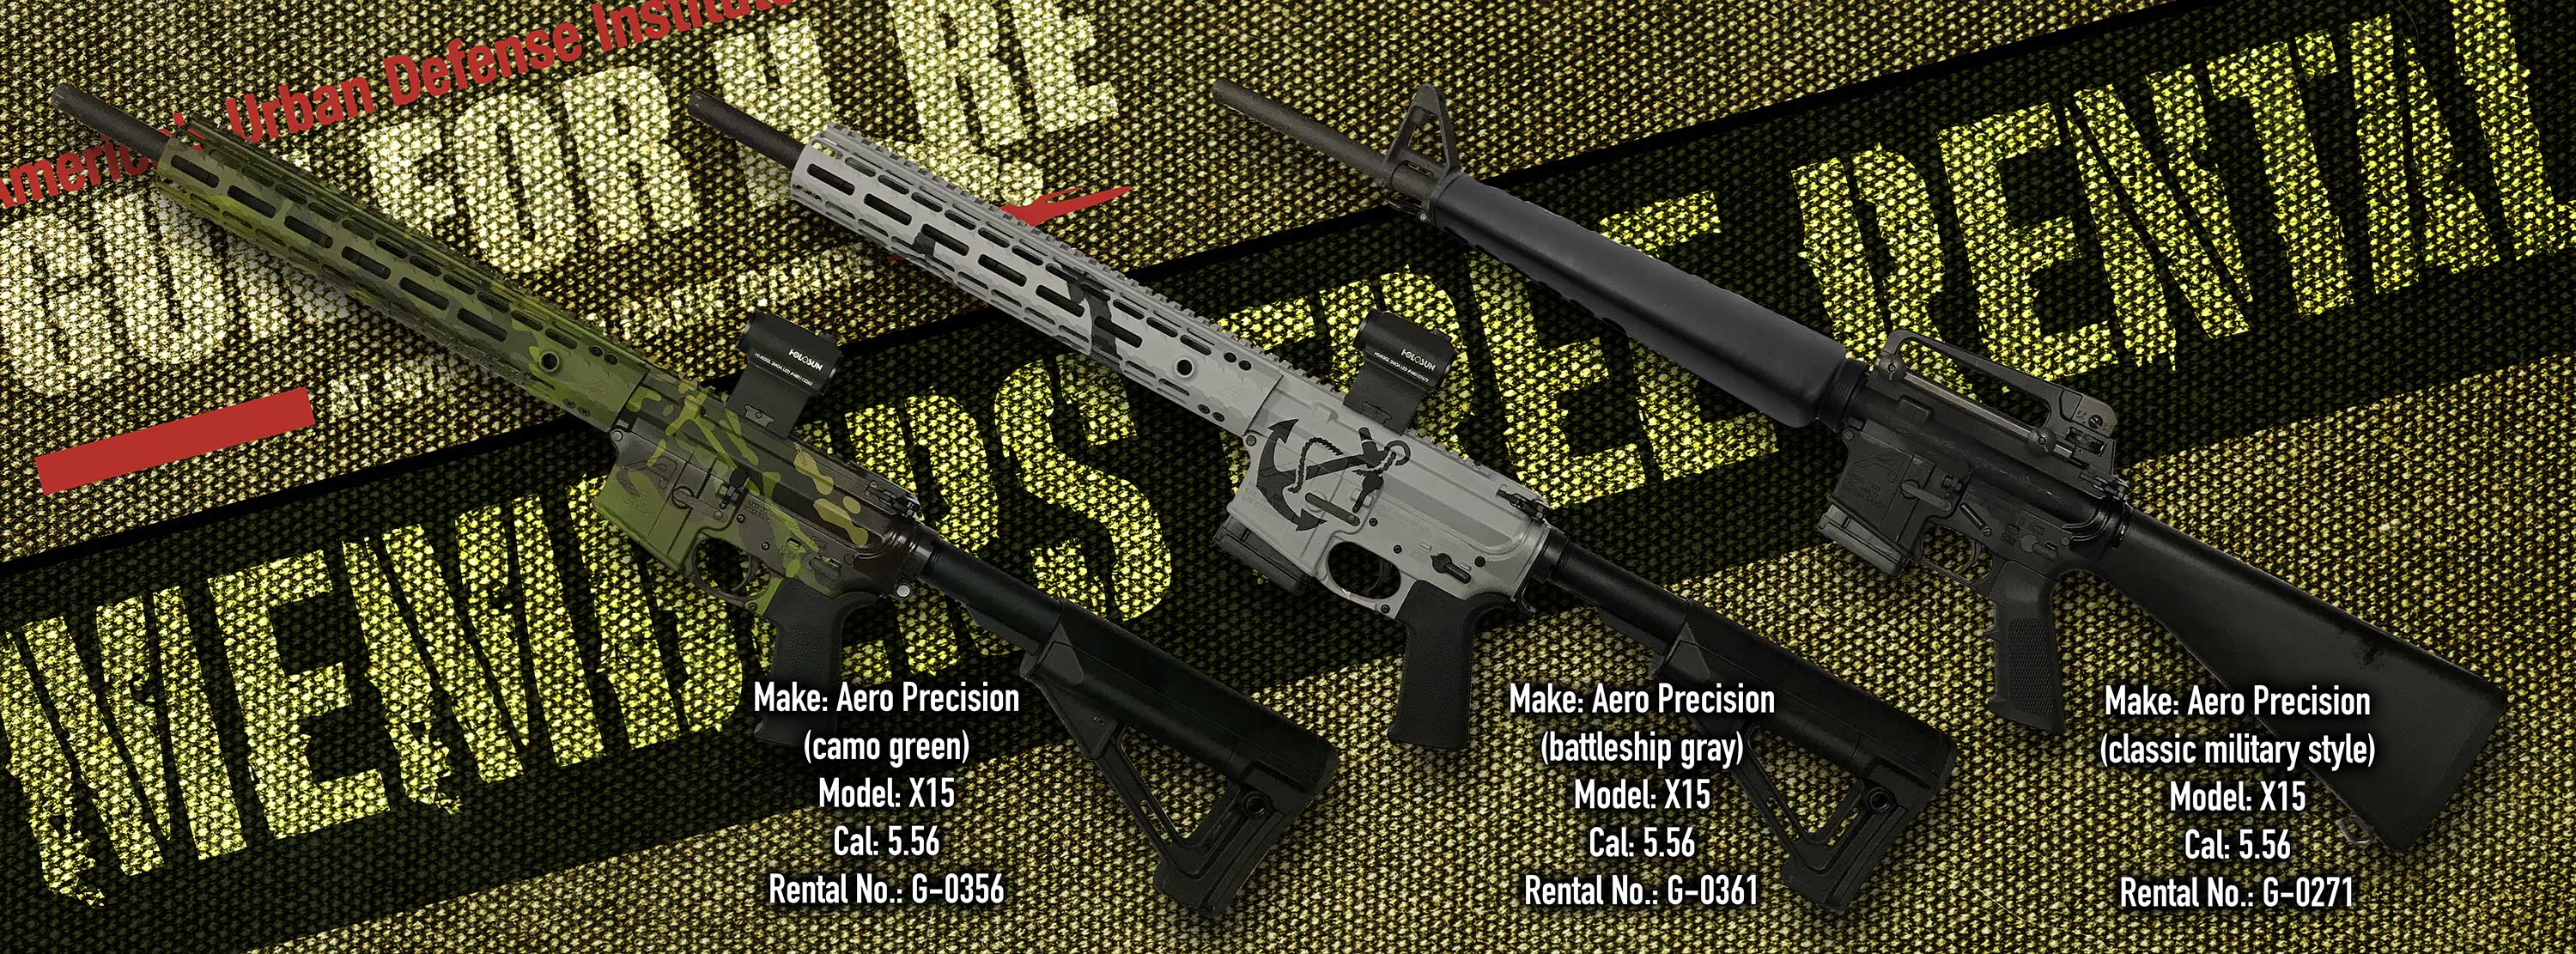 Gun For Hire Gun Rentals for July - Silver Ports